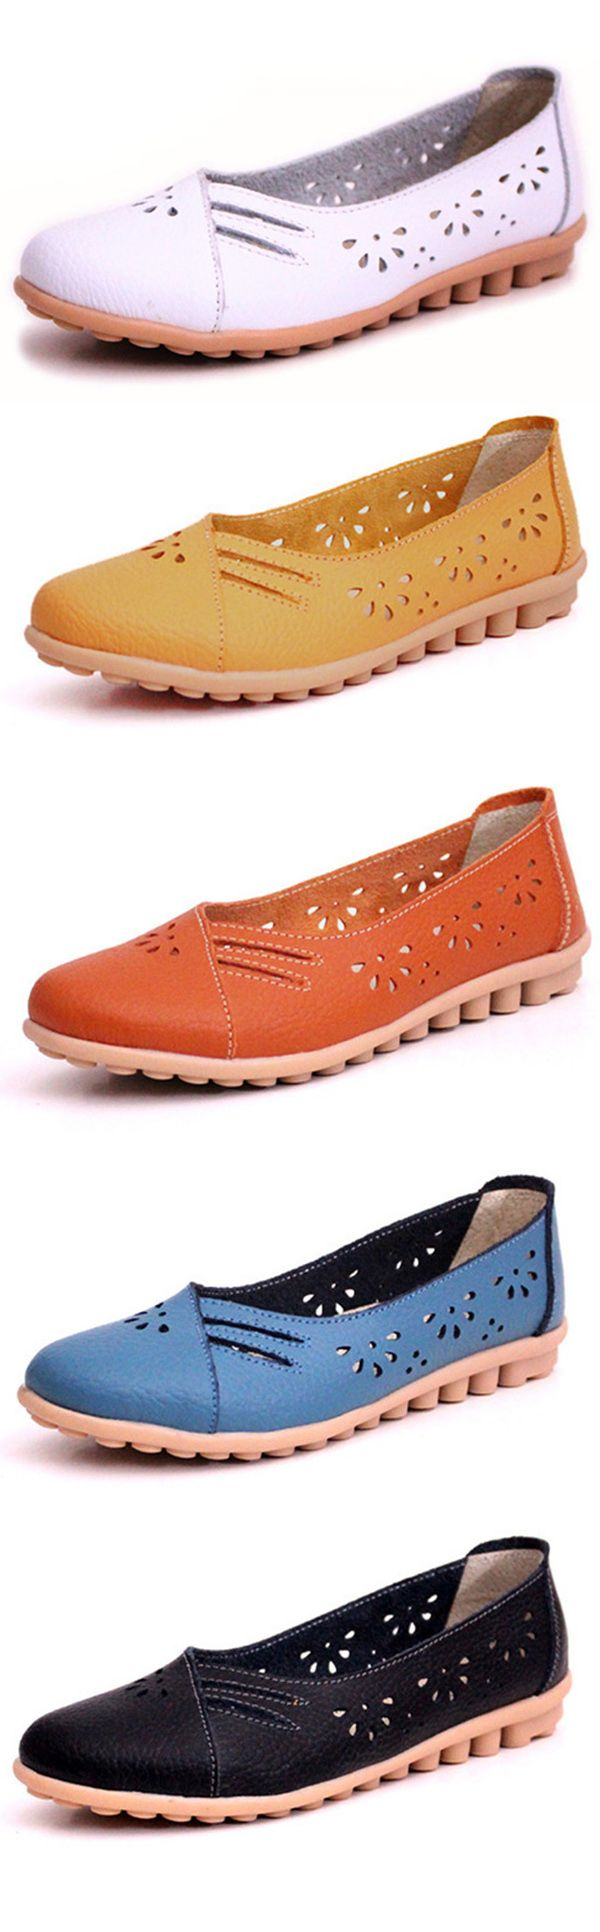 $16.37 Leather Hollow Out Strappy Breathable Soft Slip On Flat Loafers,flats shoes,shoes,cute shoes,shoes flats,summer outfits